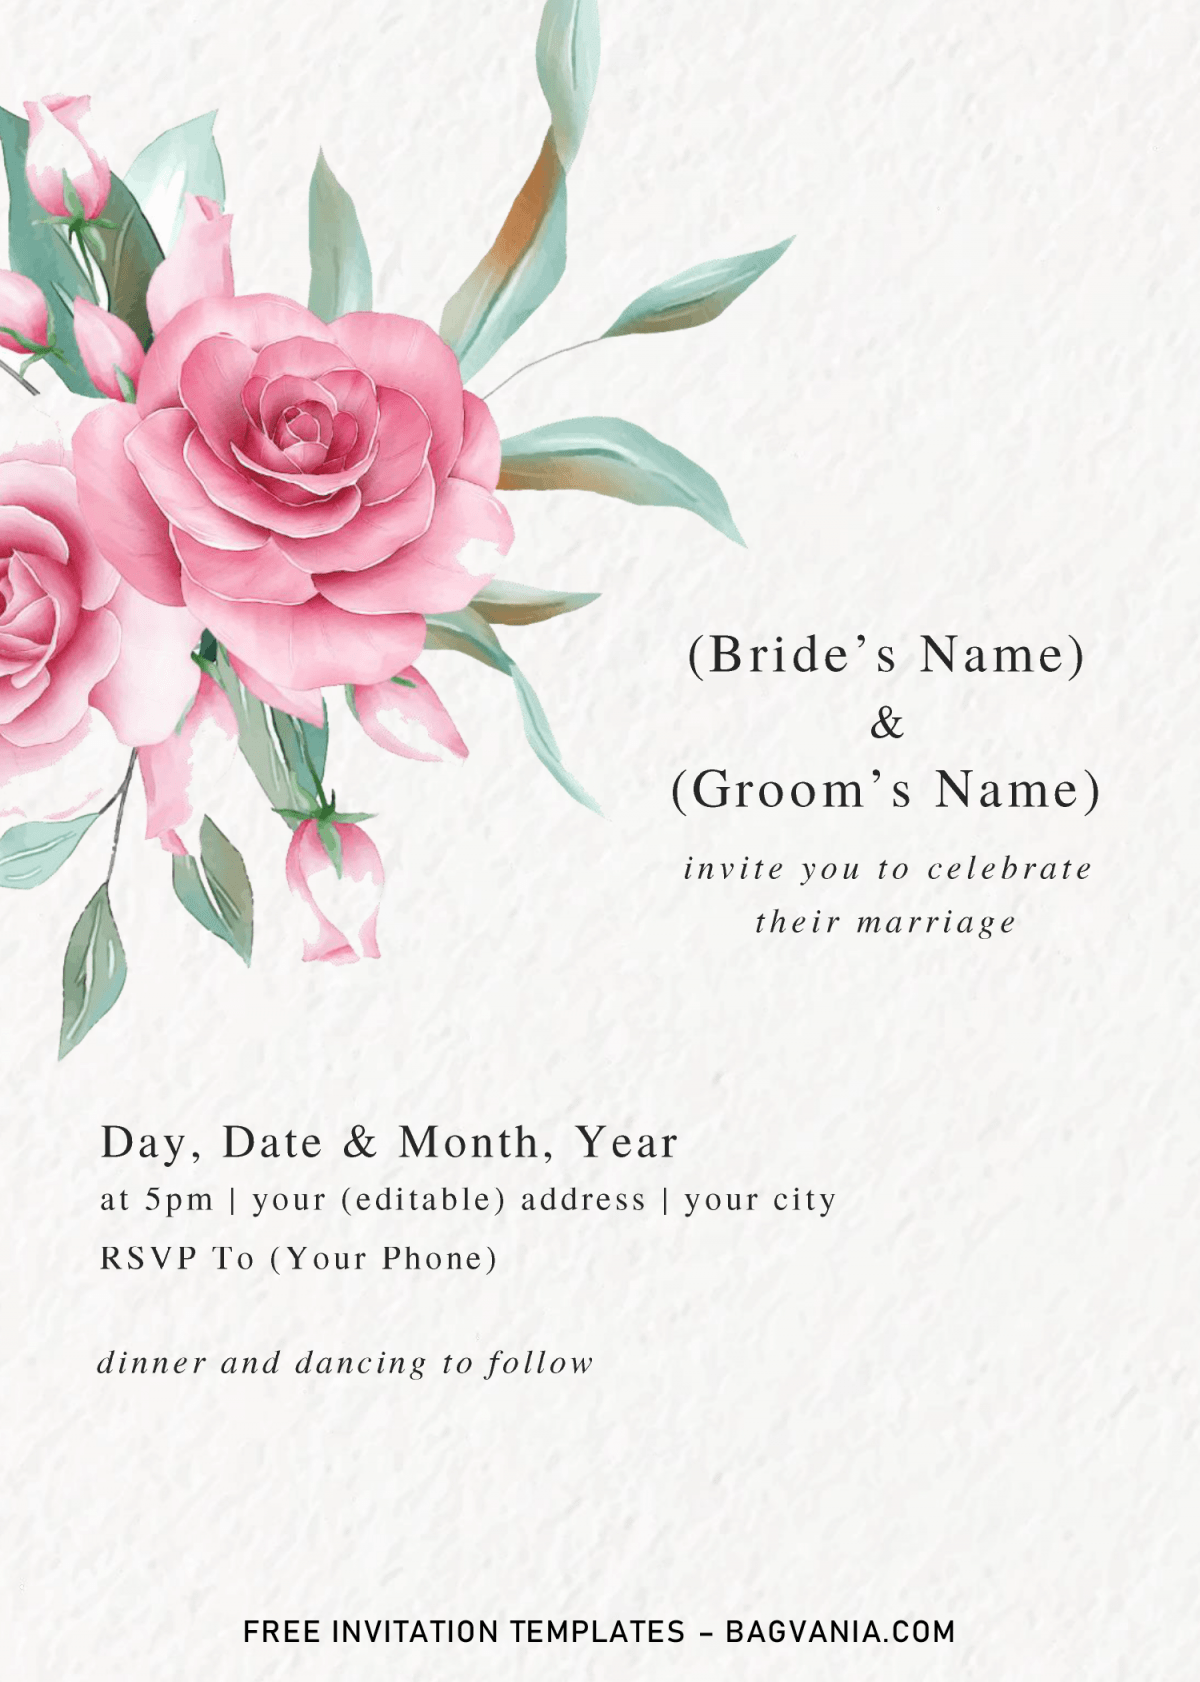 Floral And Greenery Invitation Templates - Editable With Microsoft Word and has canvas style background